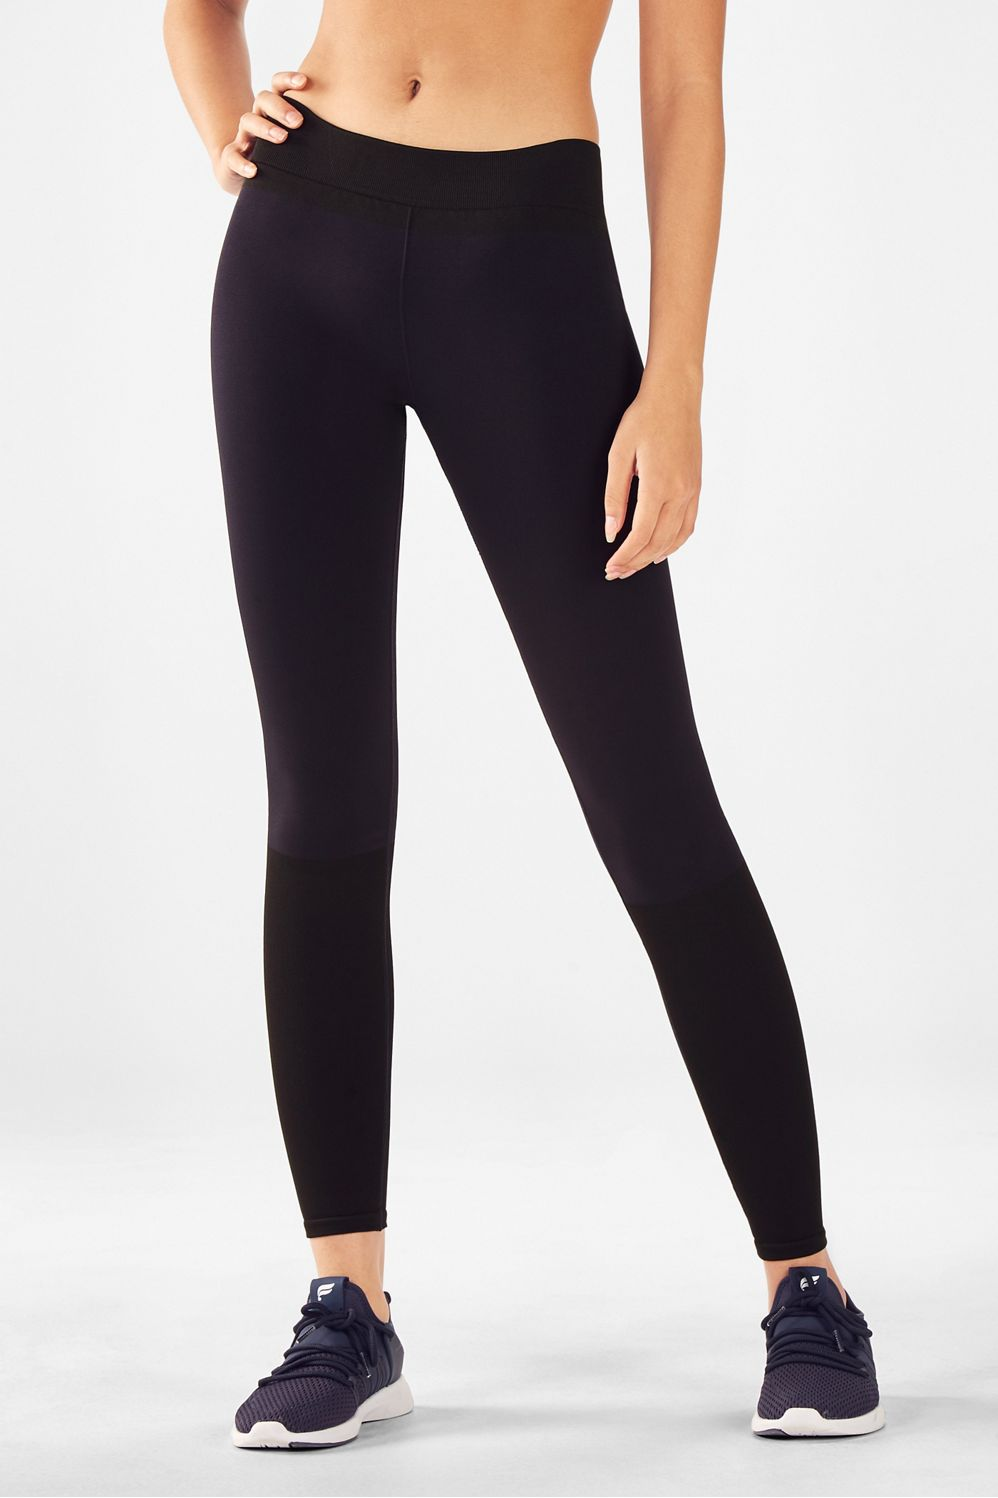 7f9b01798a0b9 Seamless Mid-Rise Statement Legging - Abyss/Black